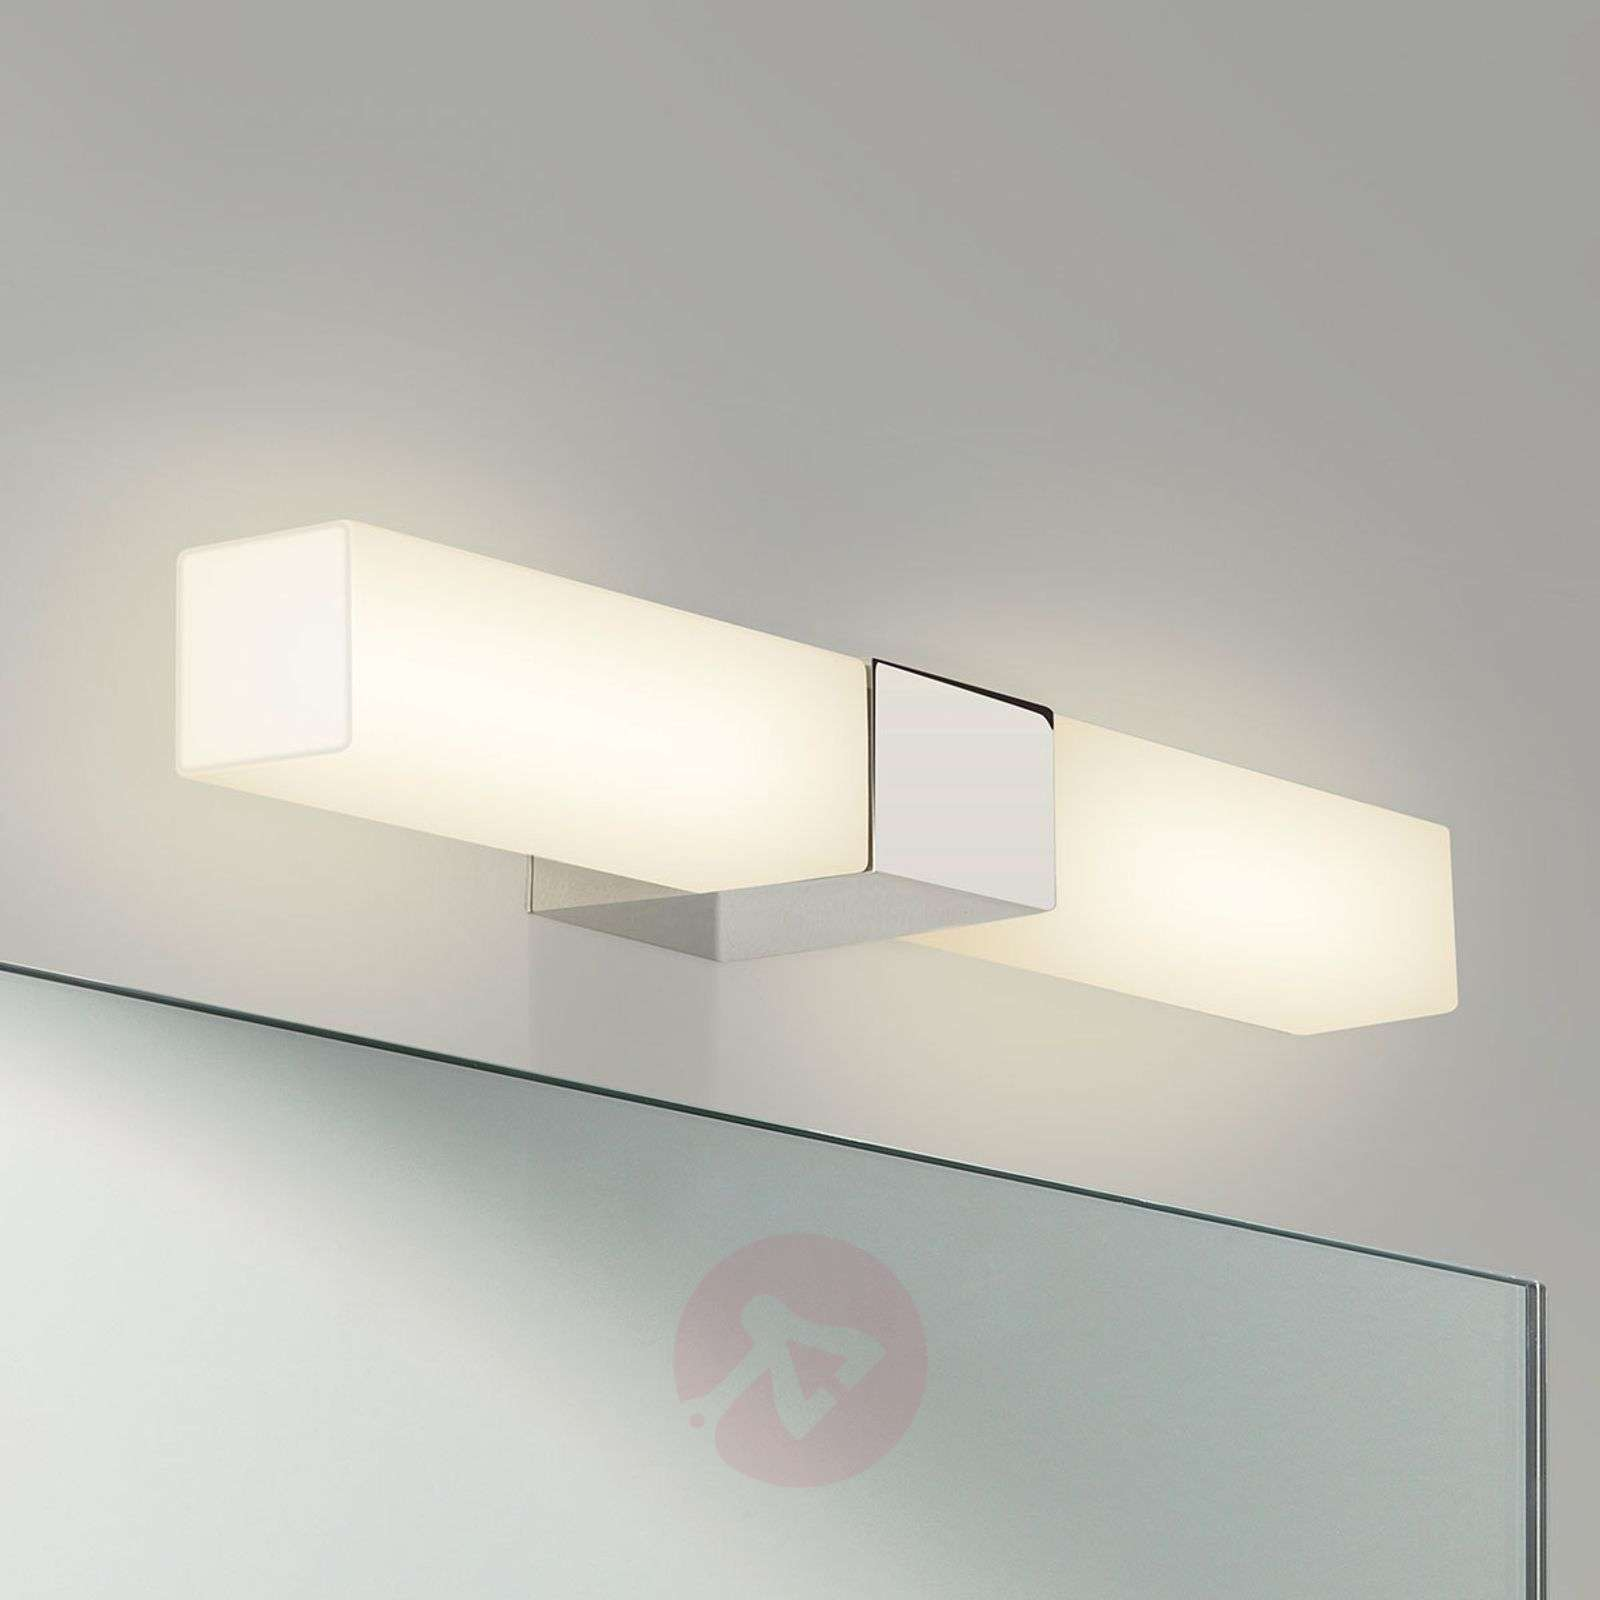 Padova Square Wall Light Practical-1020387-02